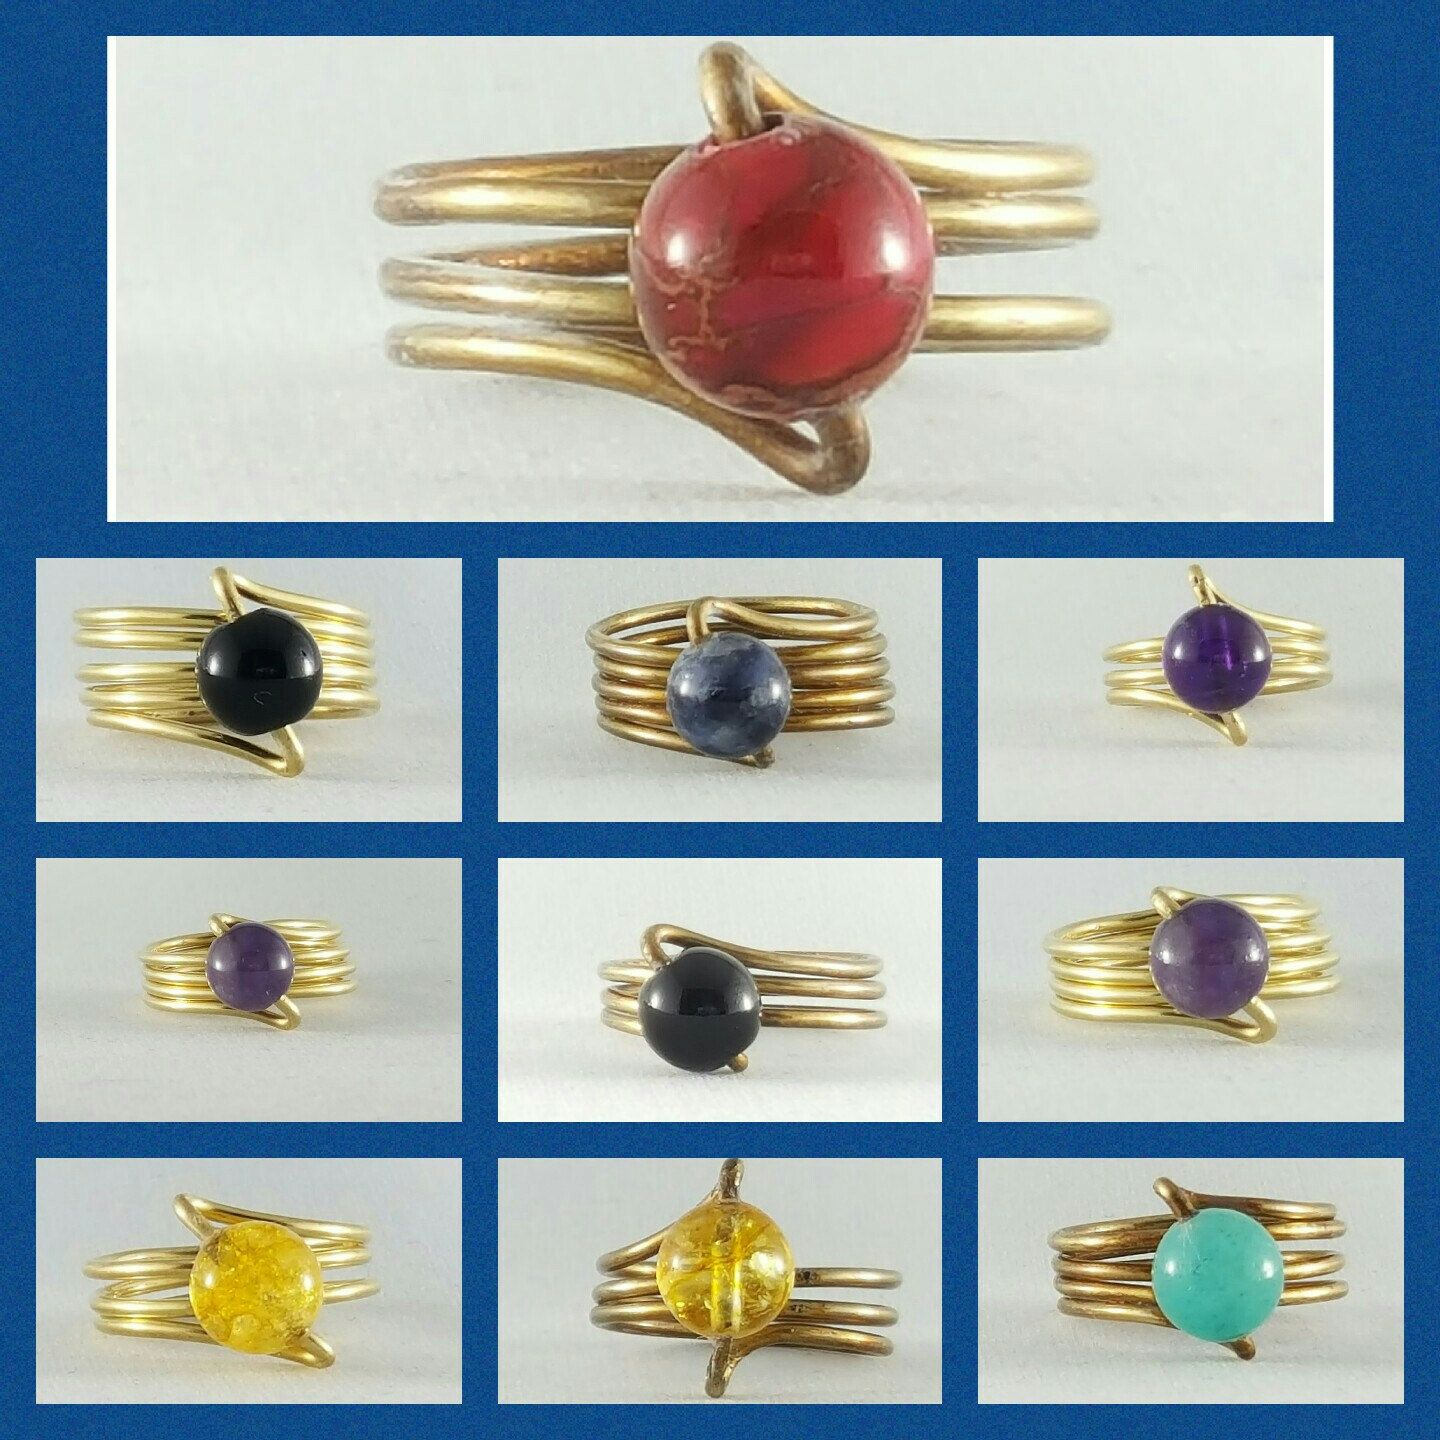 Lots of new rings added...check them out today!